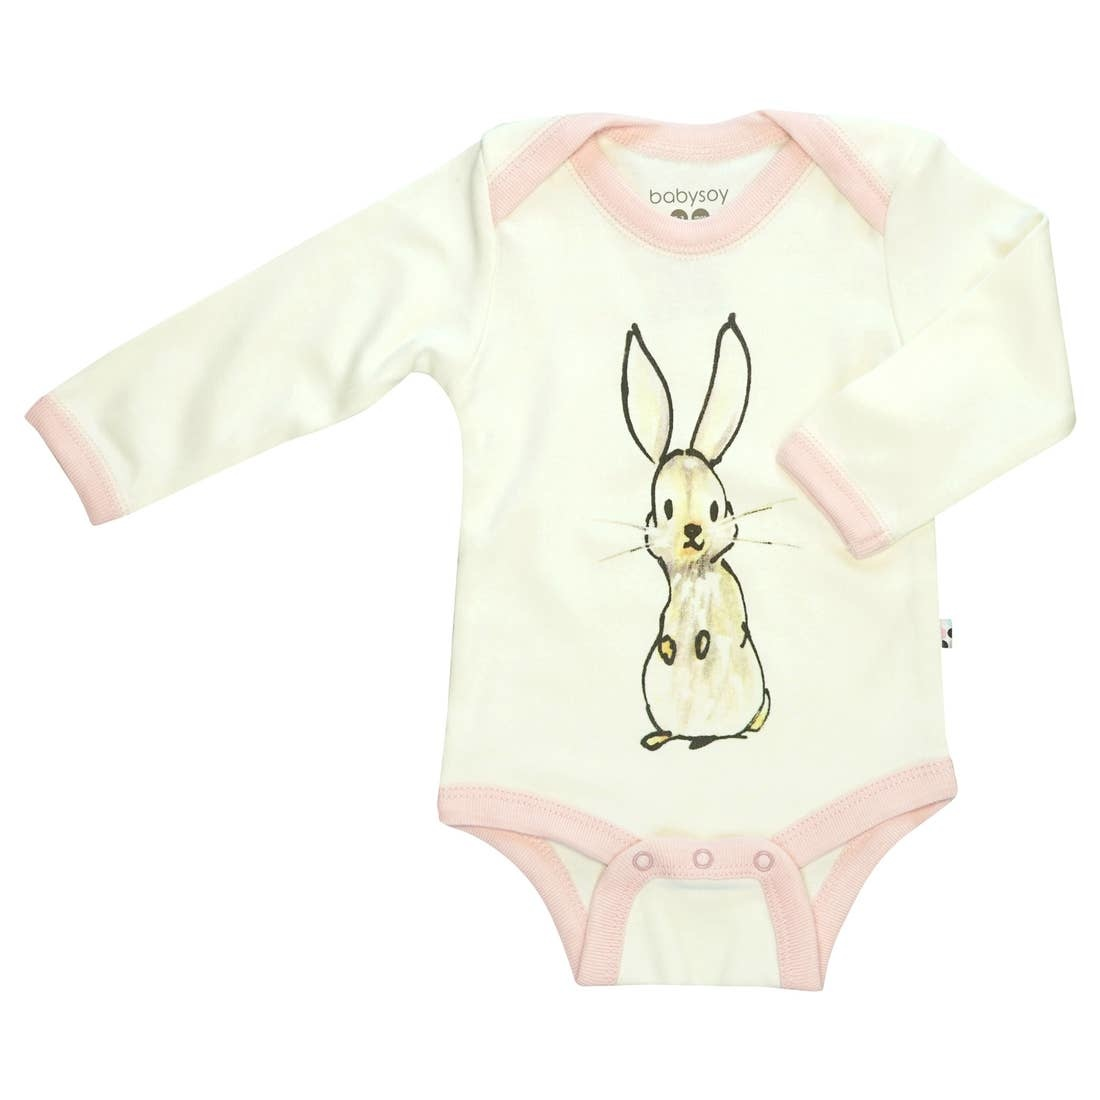 Babysoy Janey Baby Goodall Animal Body Suit- Rabbit